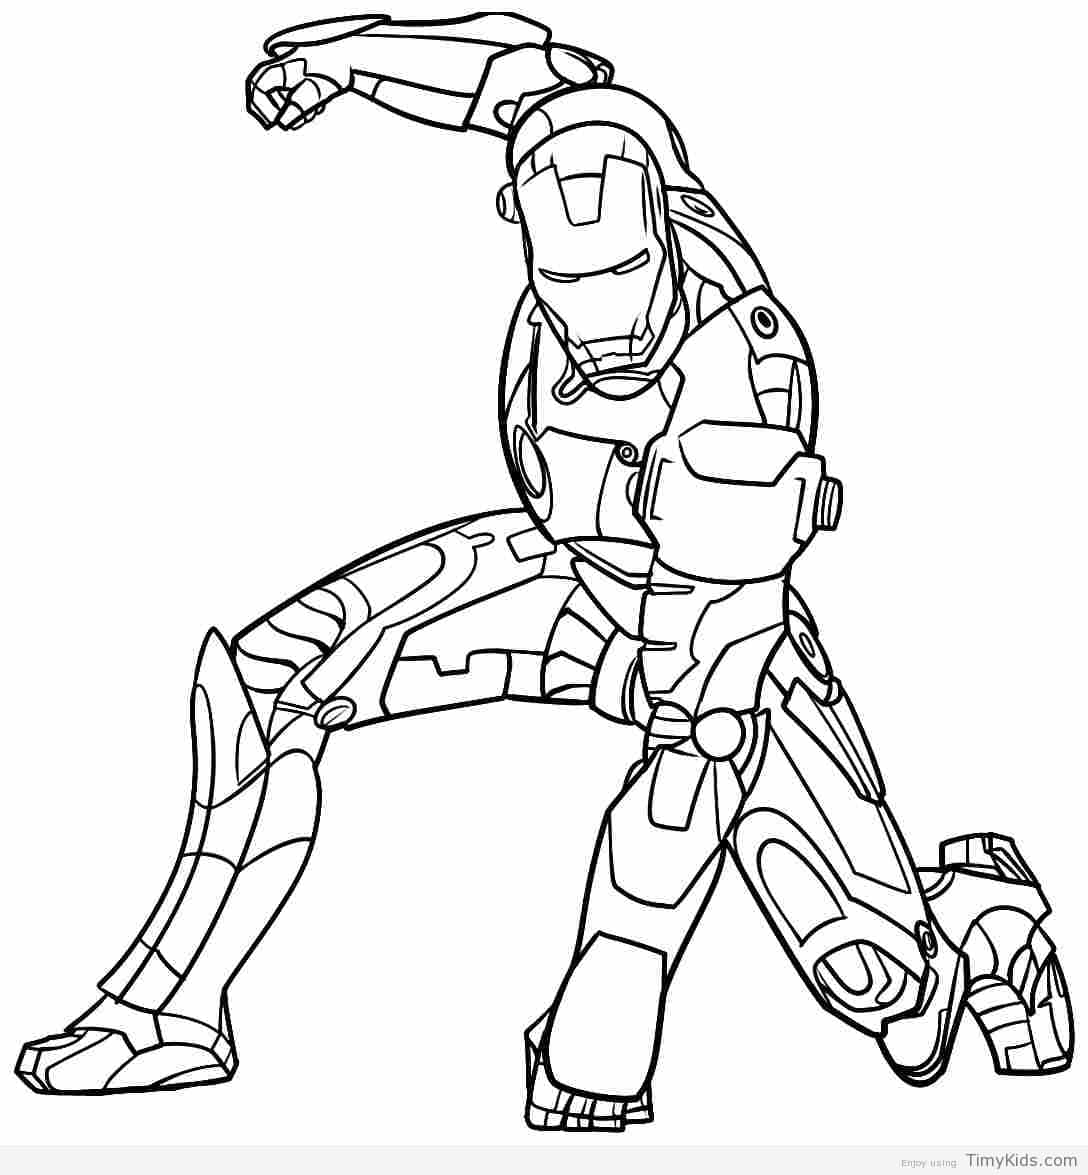 iron man 3 pictures to color the invineible iron man coloring page coloring pages color pictures to man iron 3